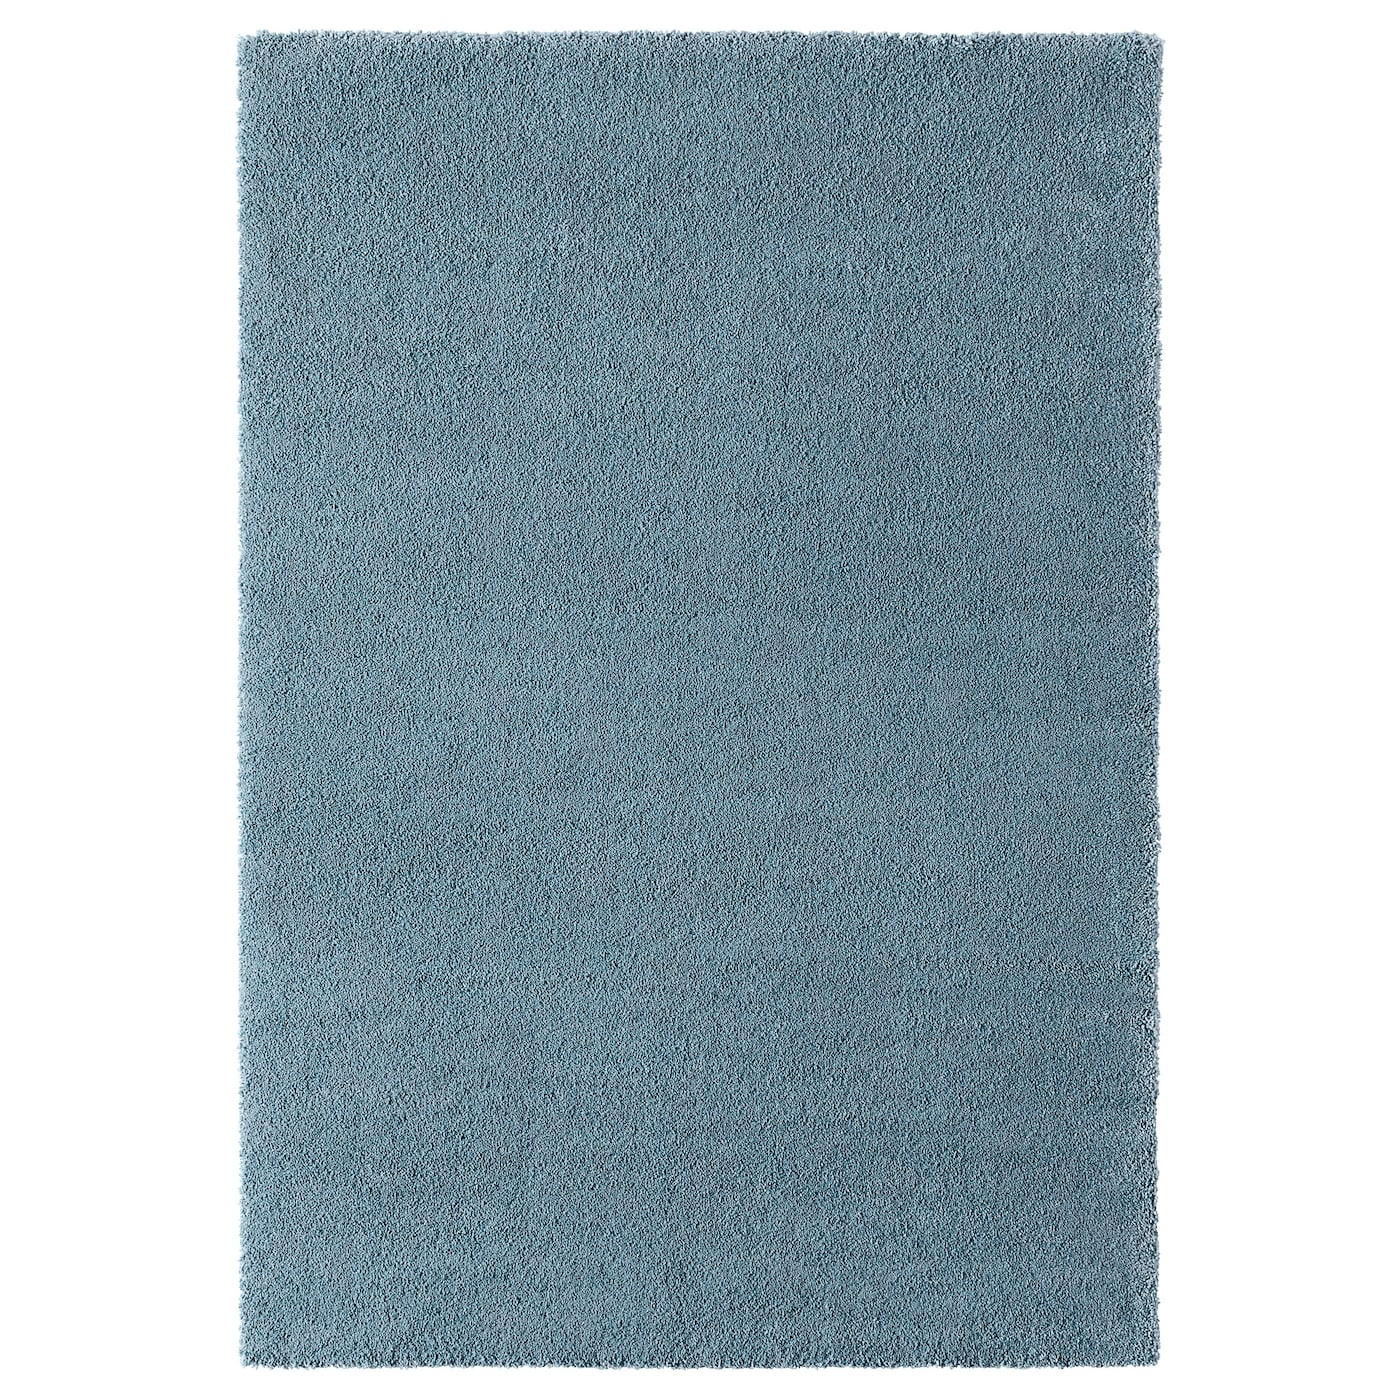 IKEA STOENSE rug, low pile The light sheen creates variations in the surface.